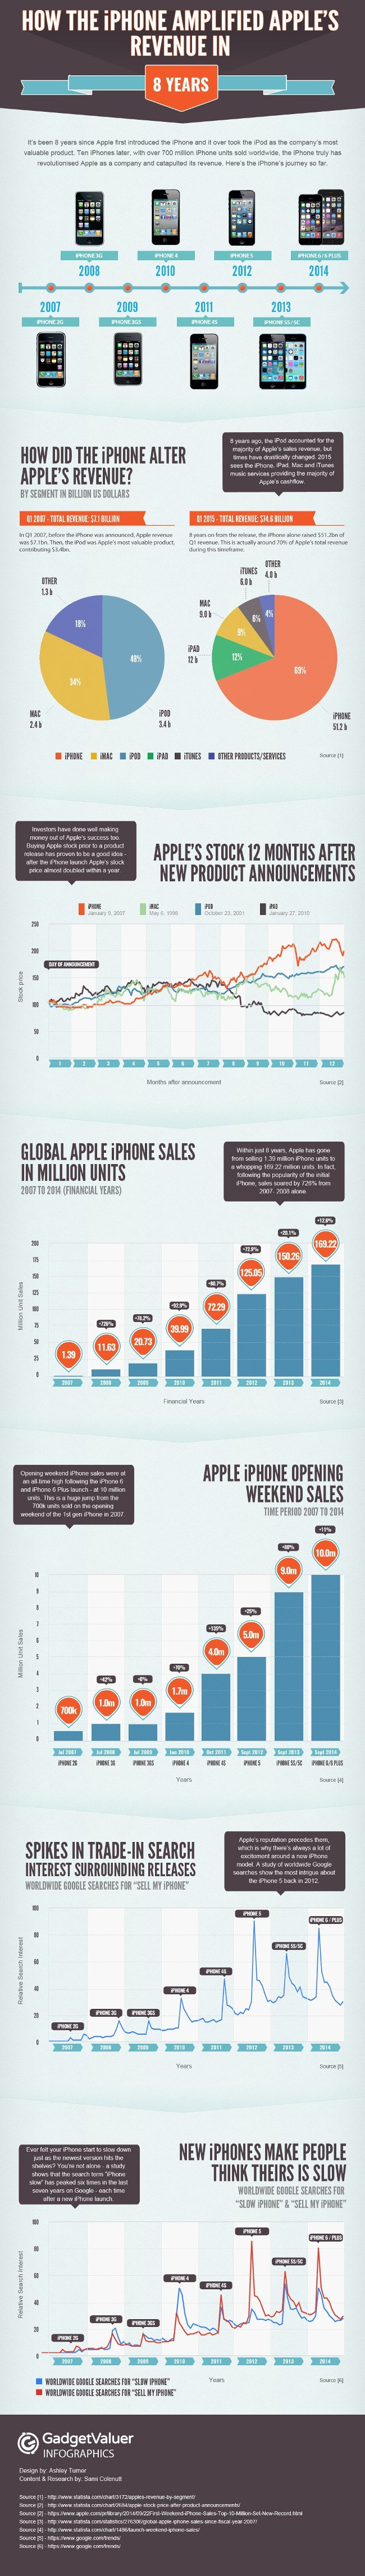 iphone-revenue-infographic